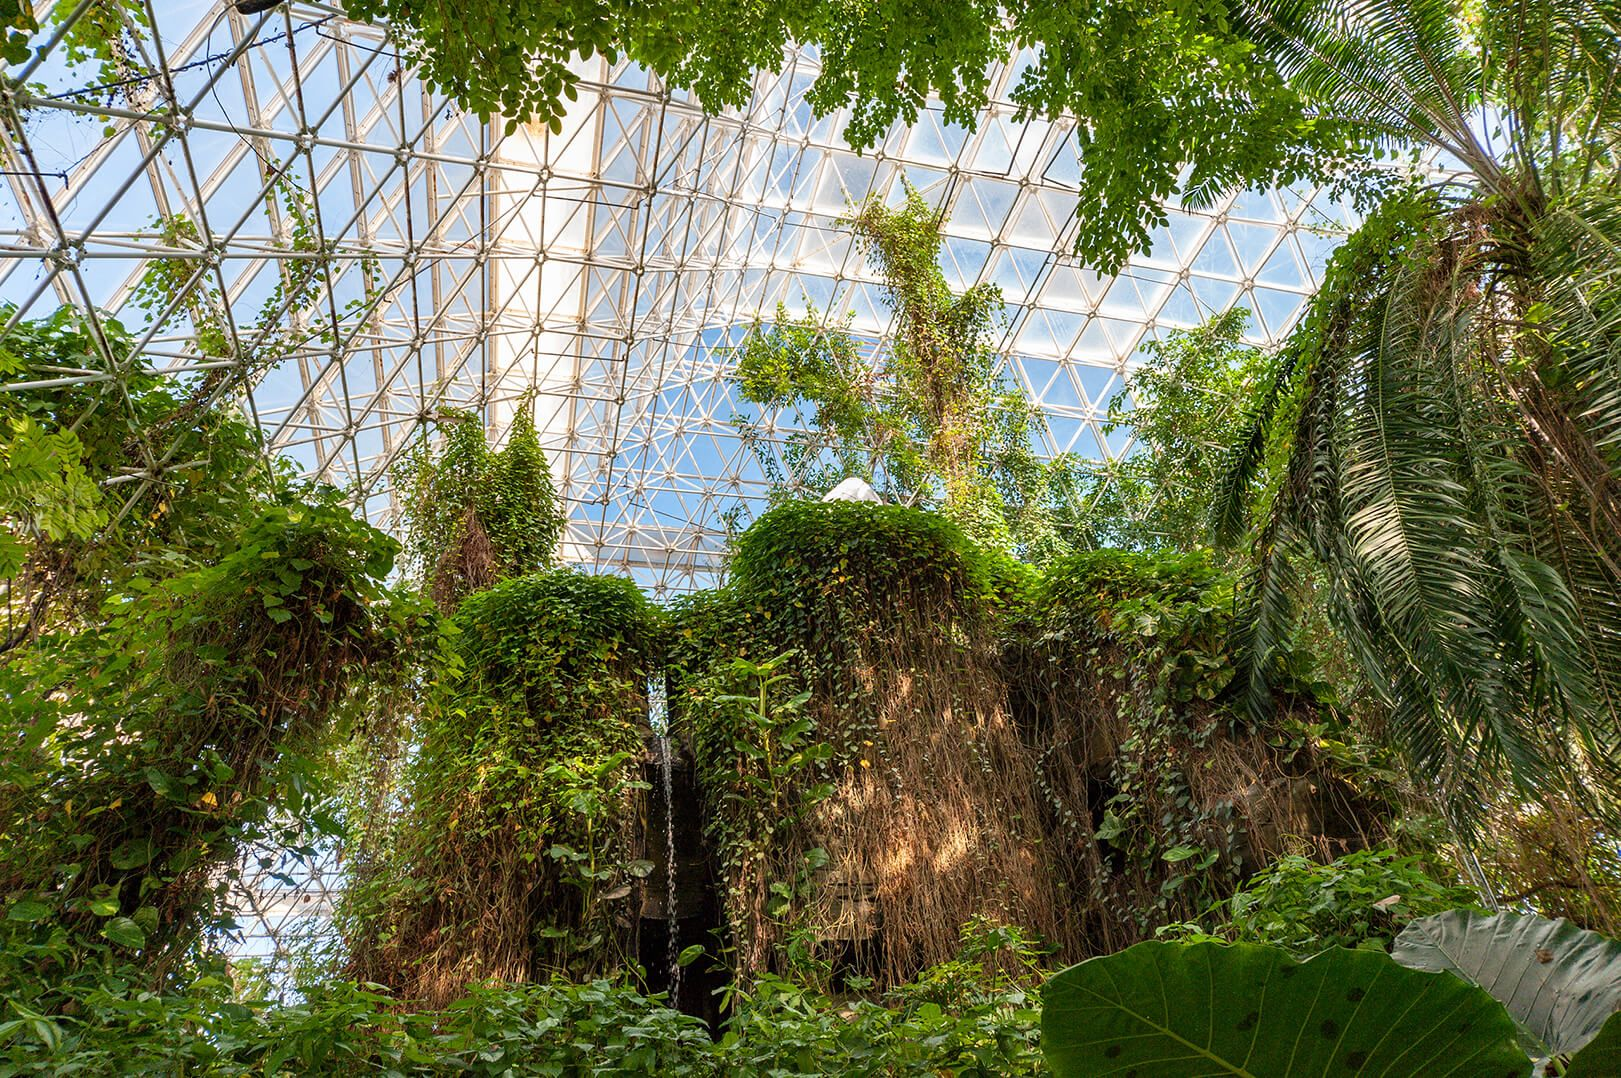 Biosphere 2's rainforest biome features steep, foliage-covered cliffs and a waterfall.